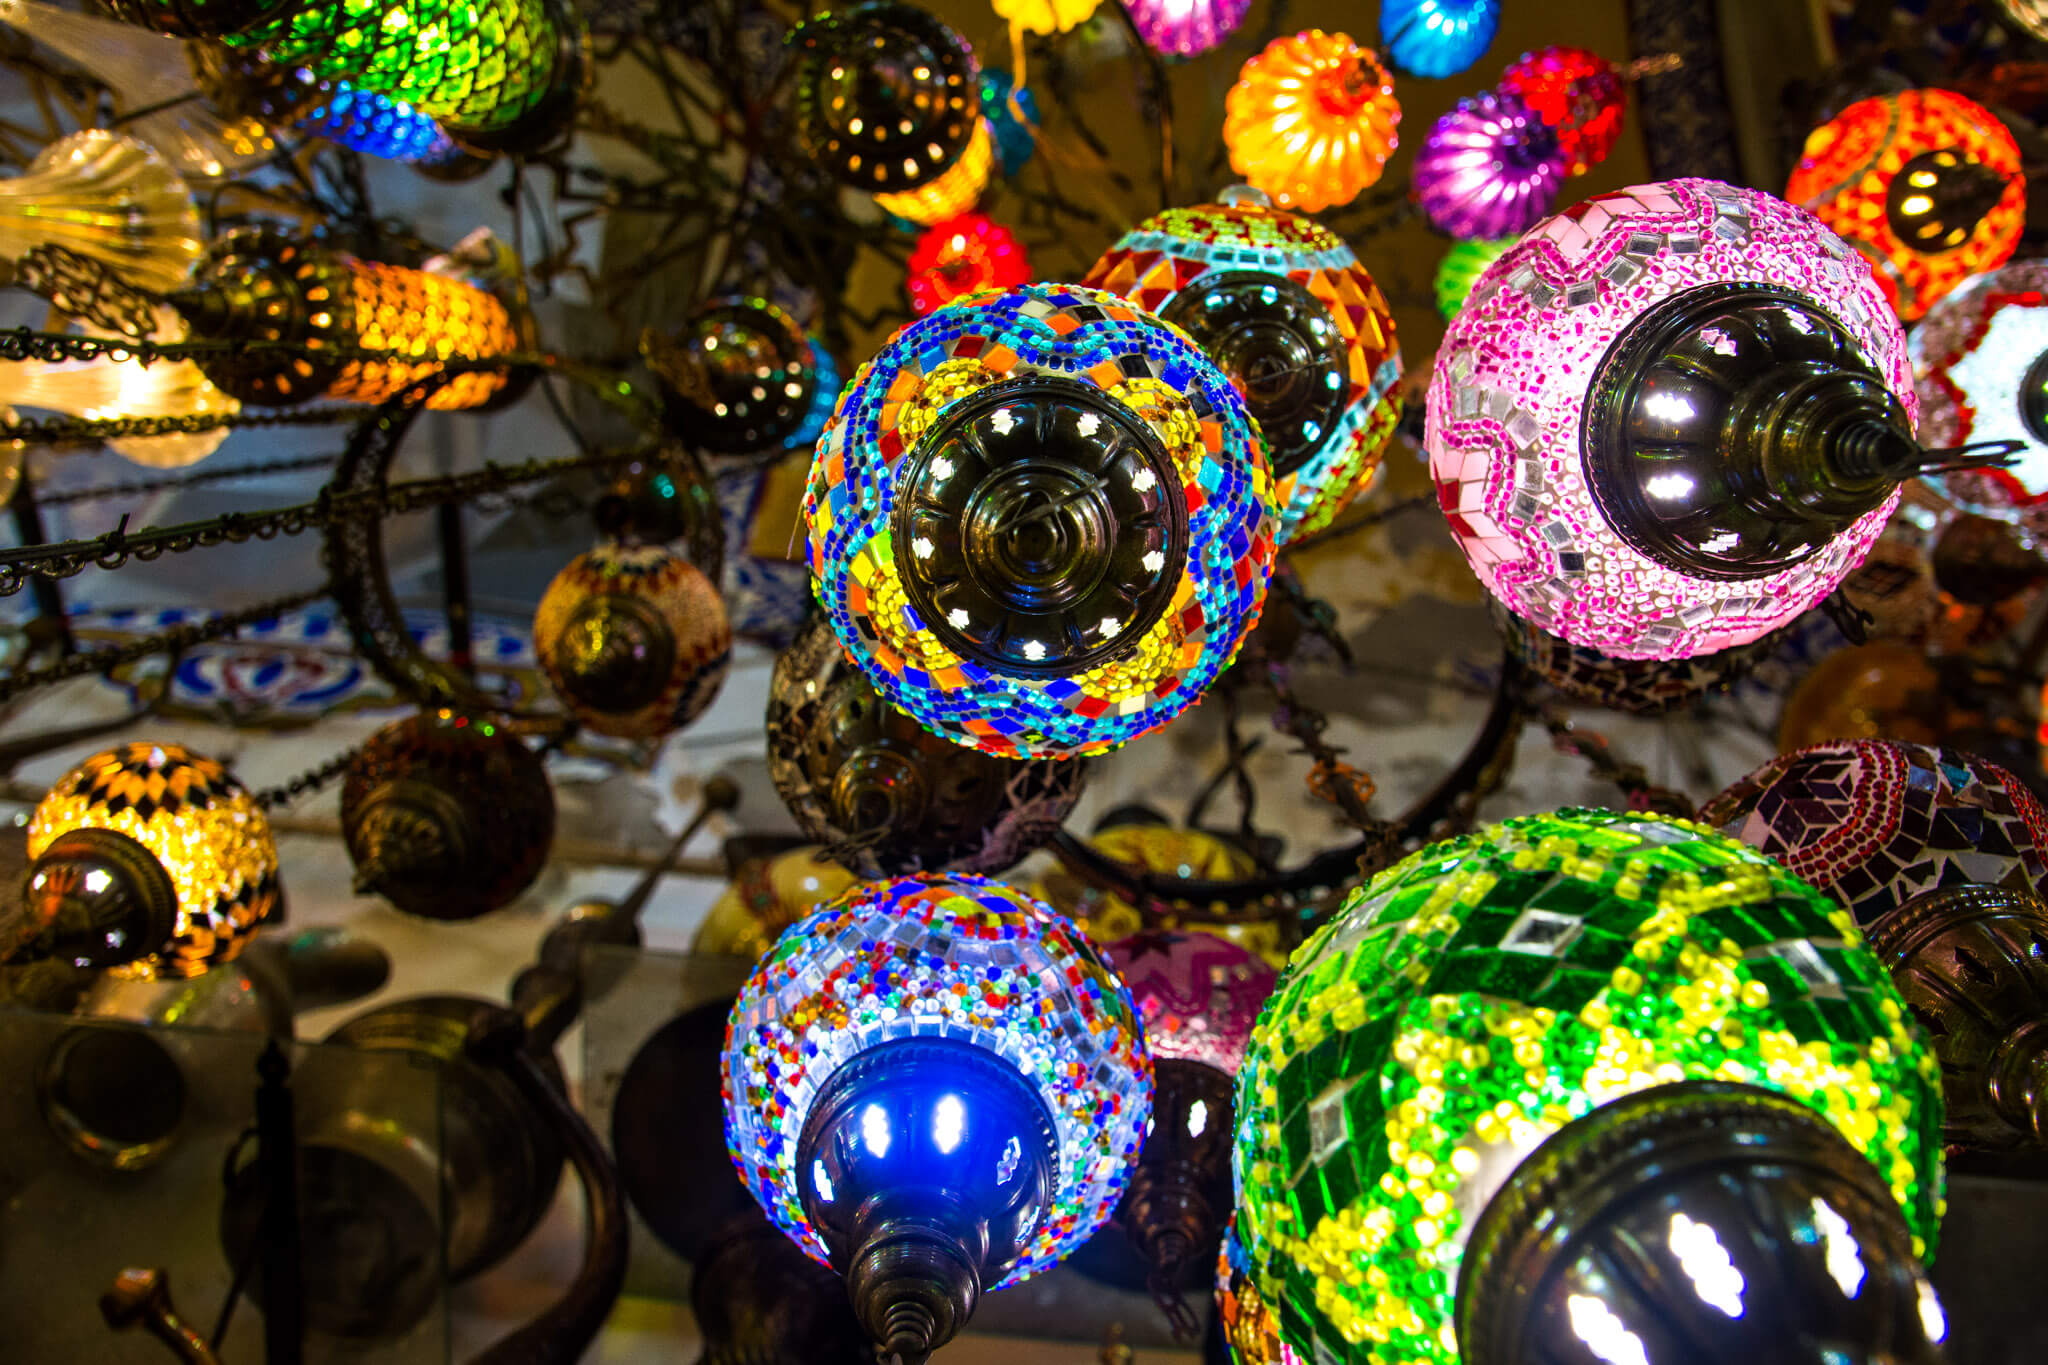 The lamps of Istanbul Grand Bazaar